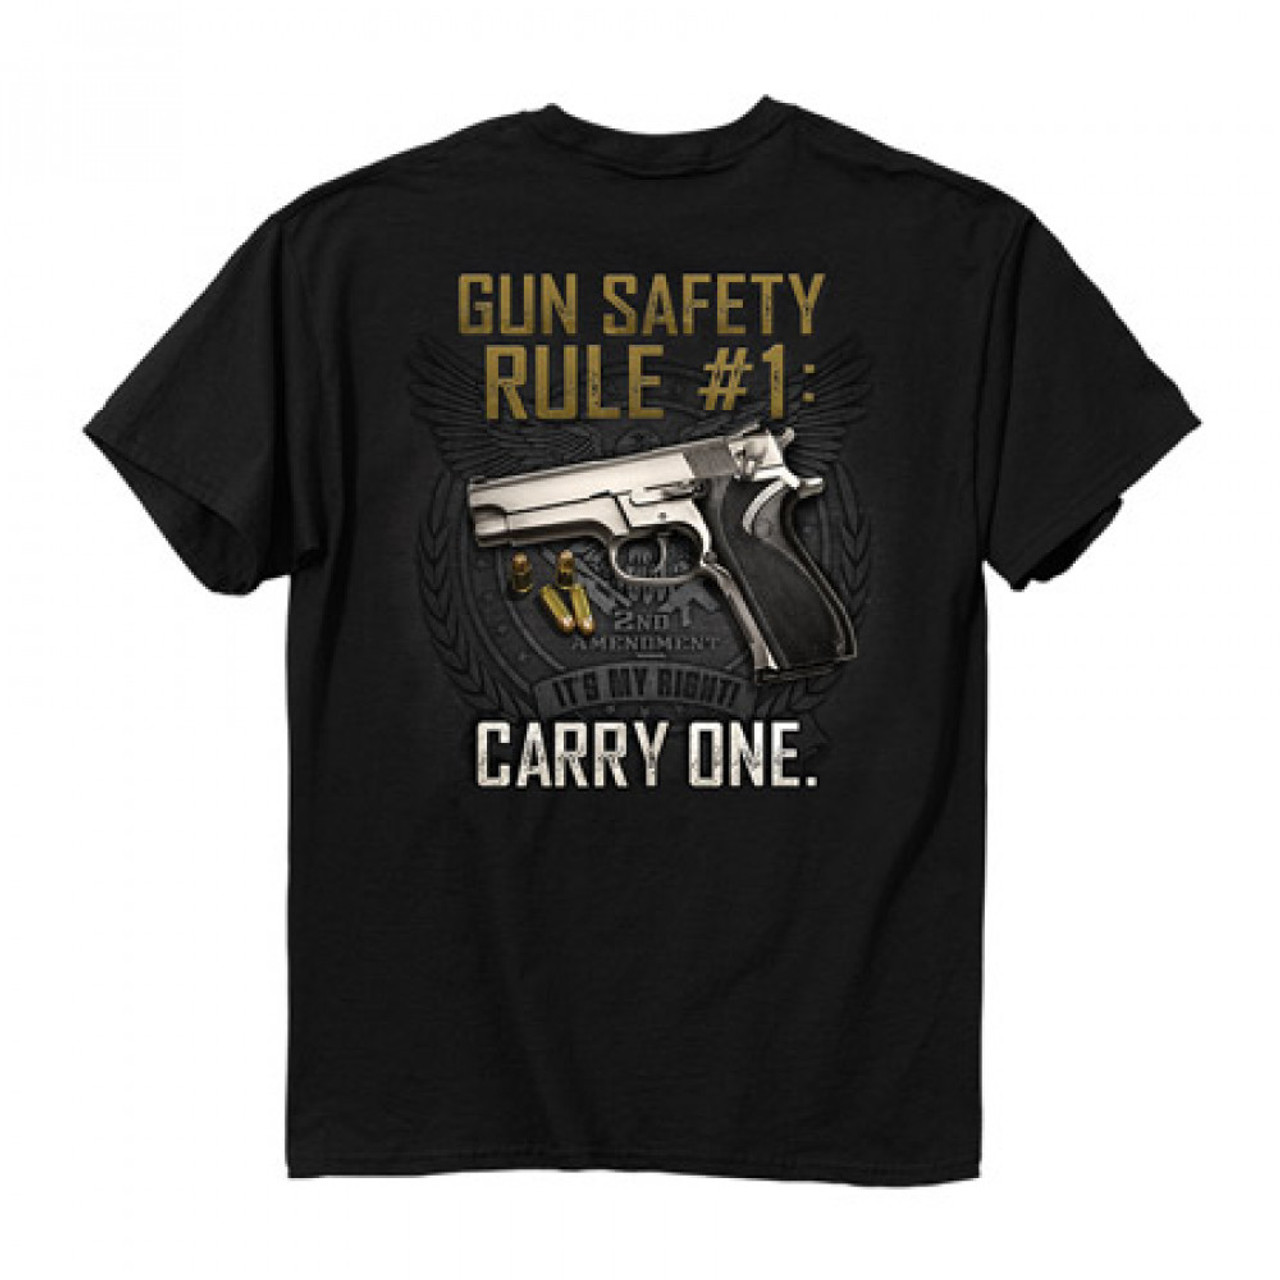 **(NEW-OFFICIAL-N.R.A.GUN-SAFETY-RULE-#1, IS TO-CARRY-ONE,NICE-DOUBLE-SIDED-GRAPHIC-PRINTED-PREMIUM-LICENSED-TEES:)**